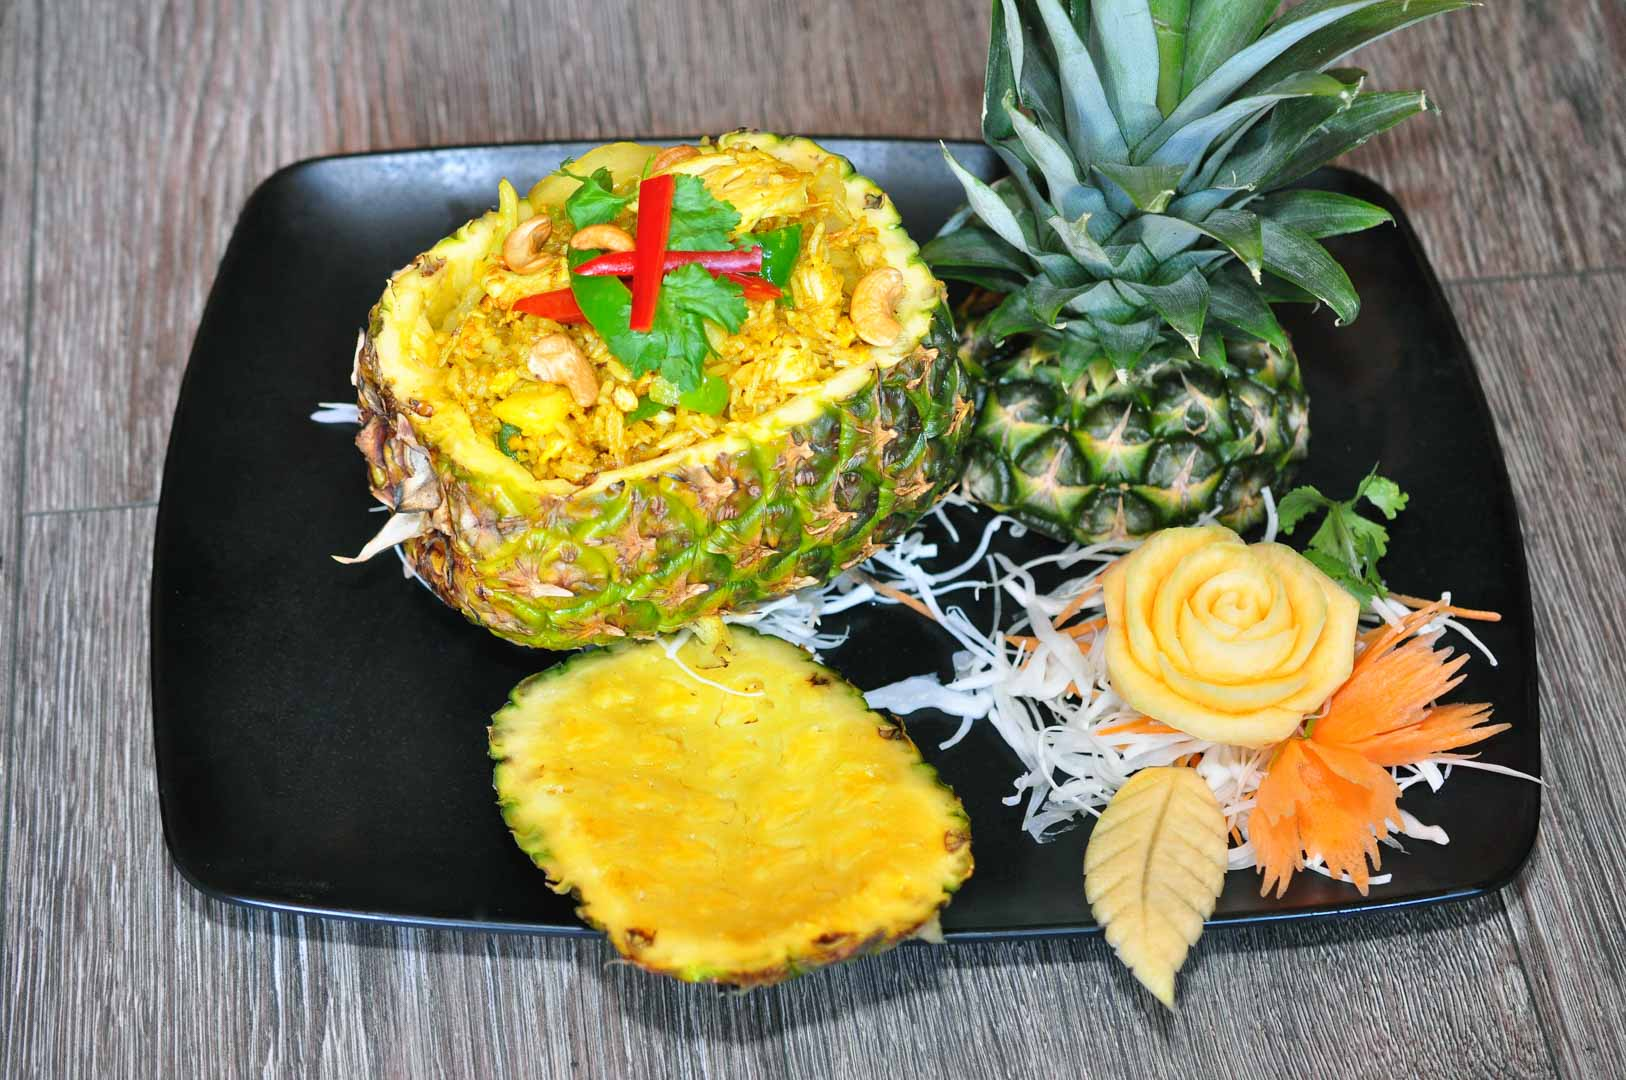 Pineapple Fried Rice with Chicken (G, E, S)